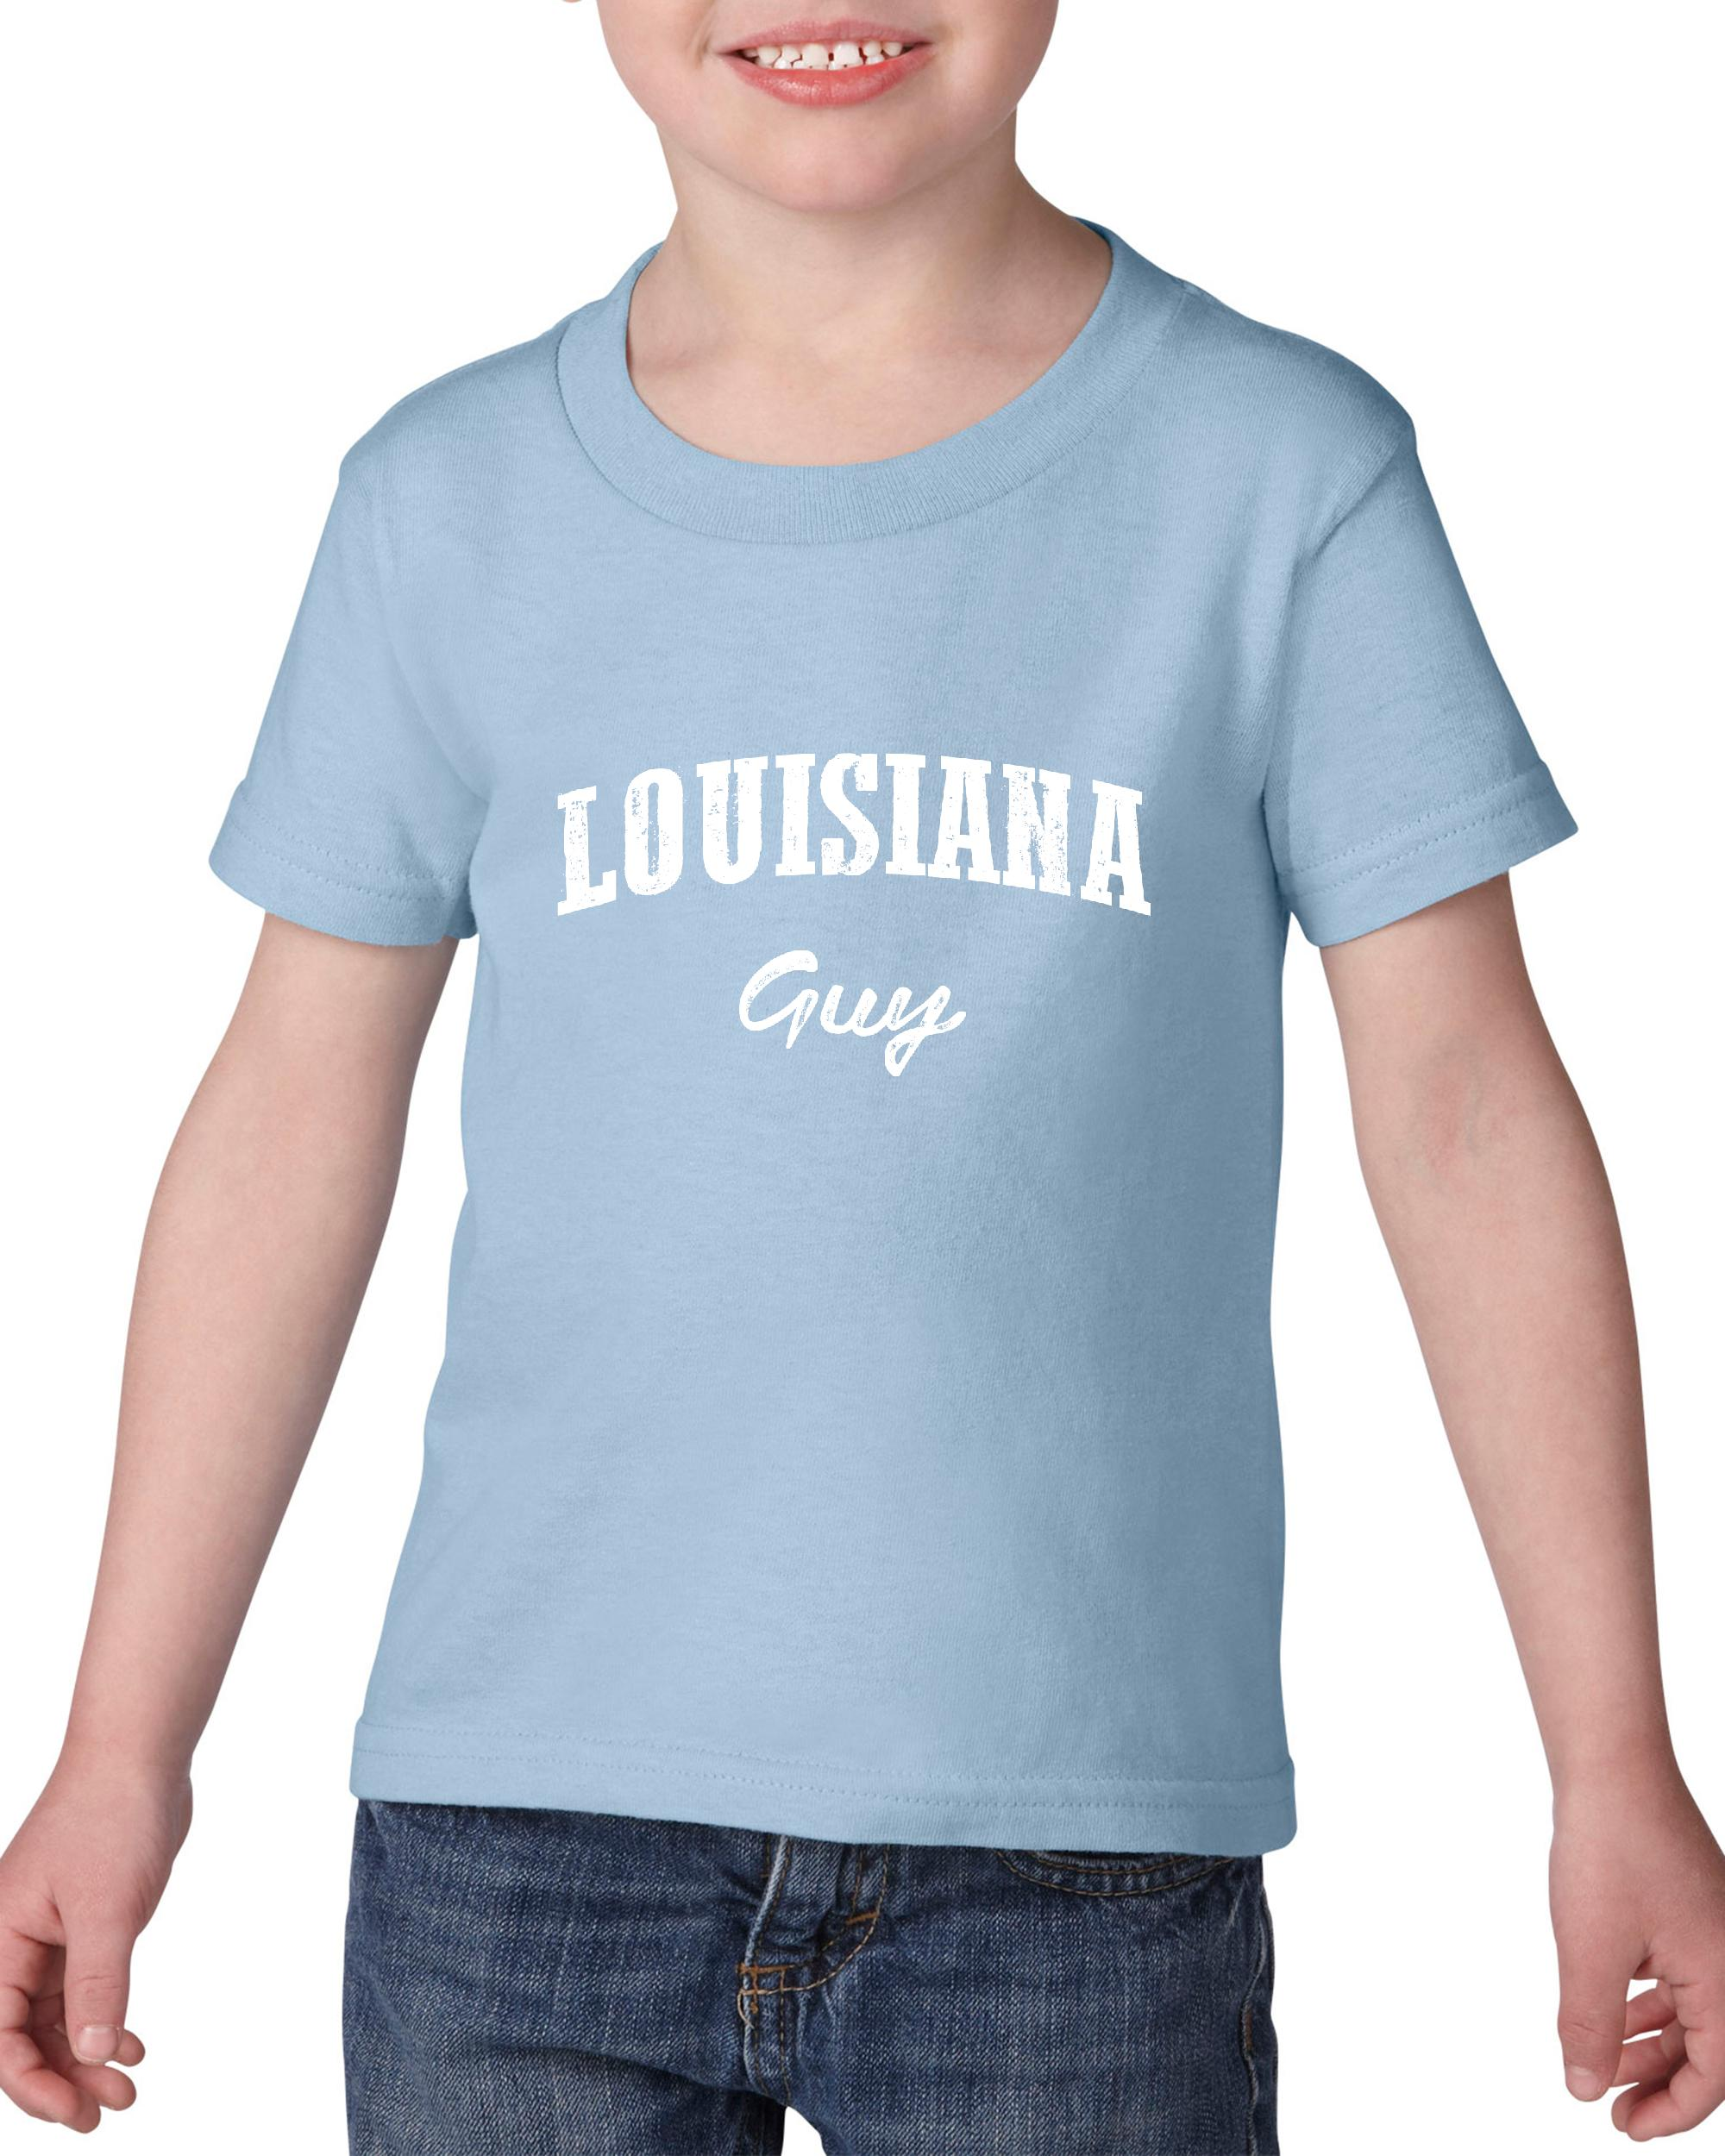 Artix LA Guy Map New Orleans Flag Baton Rouge Home of University of Louisiana Heavy Cotton Toddler Kids T-Shirt Tee Clothing